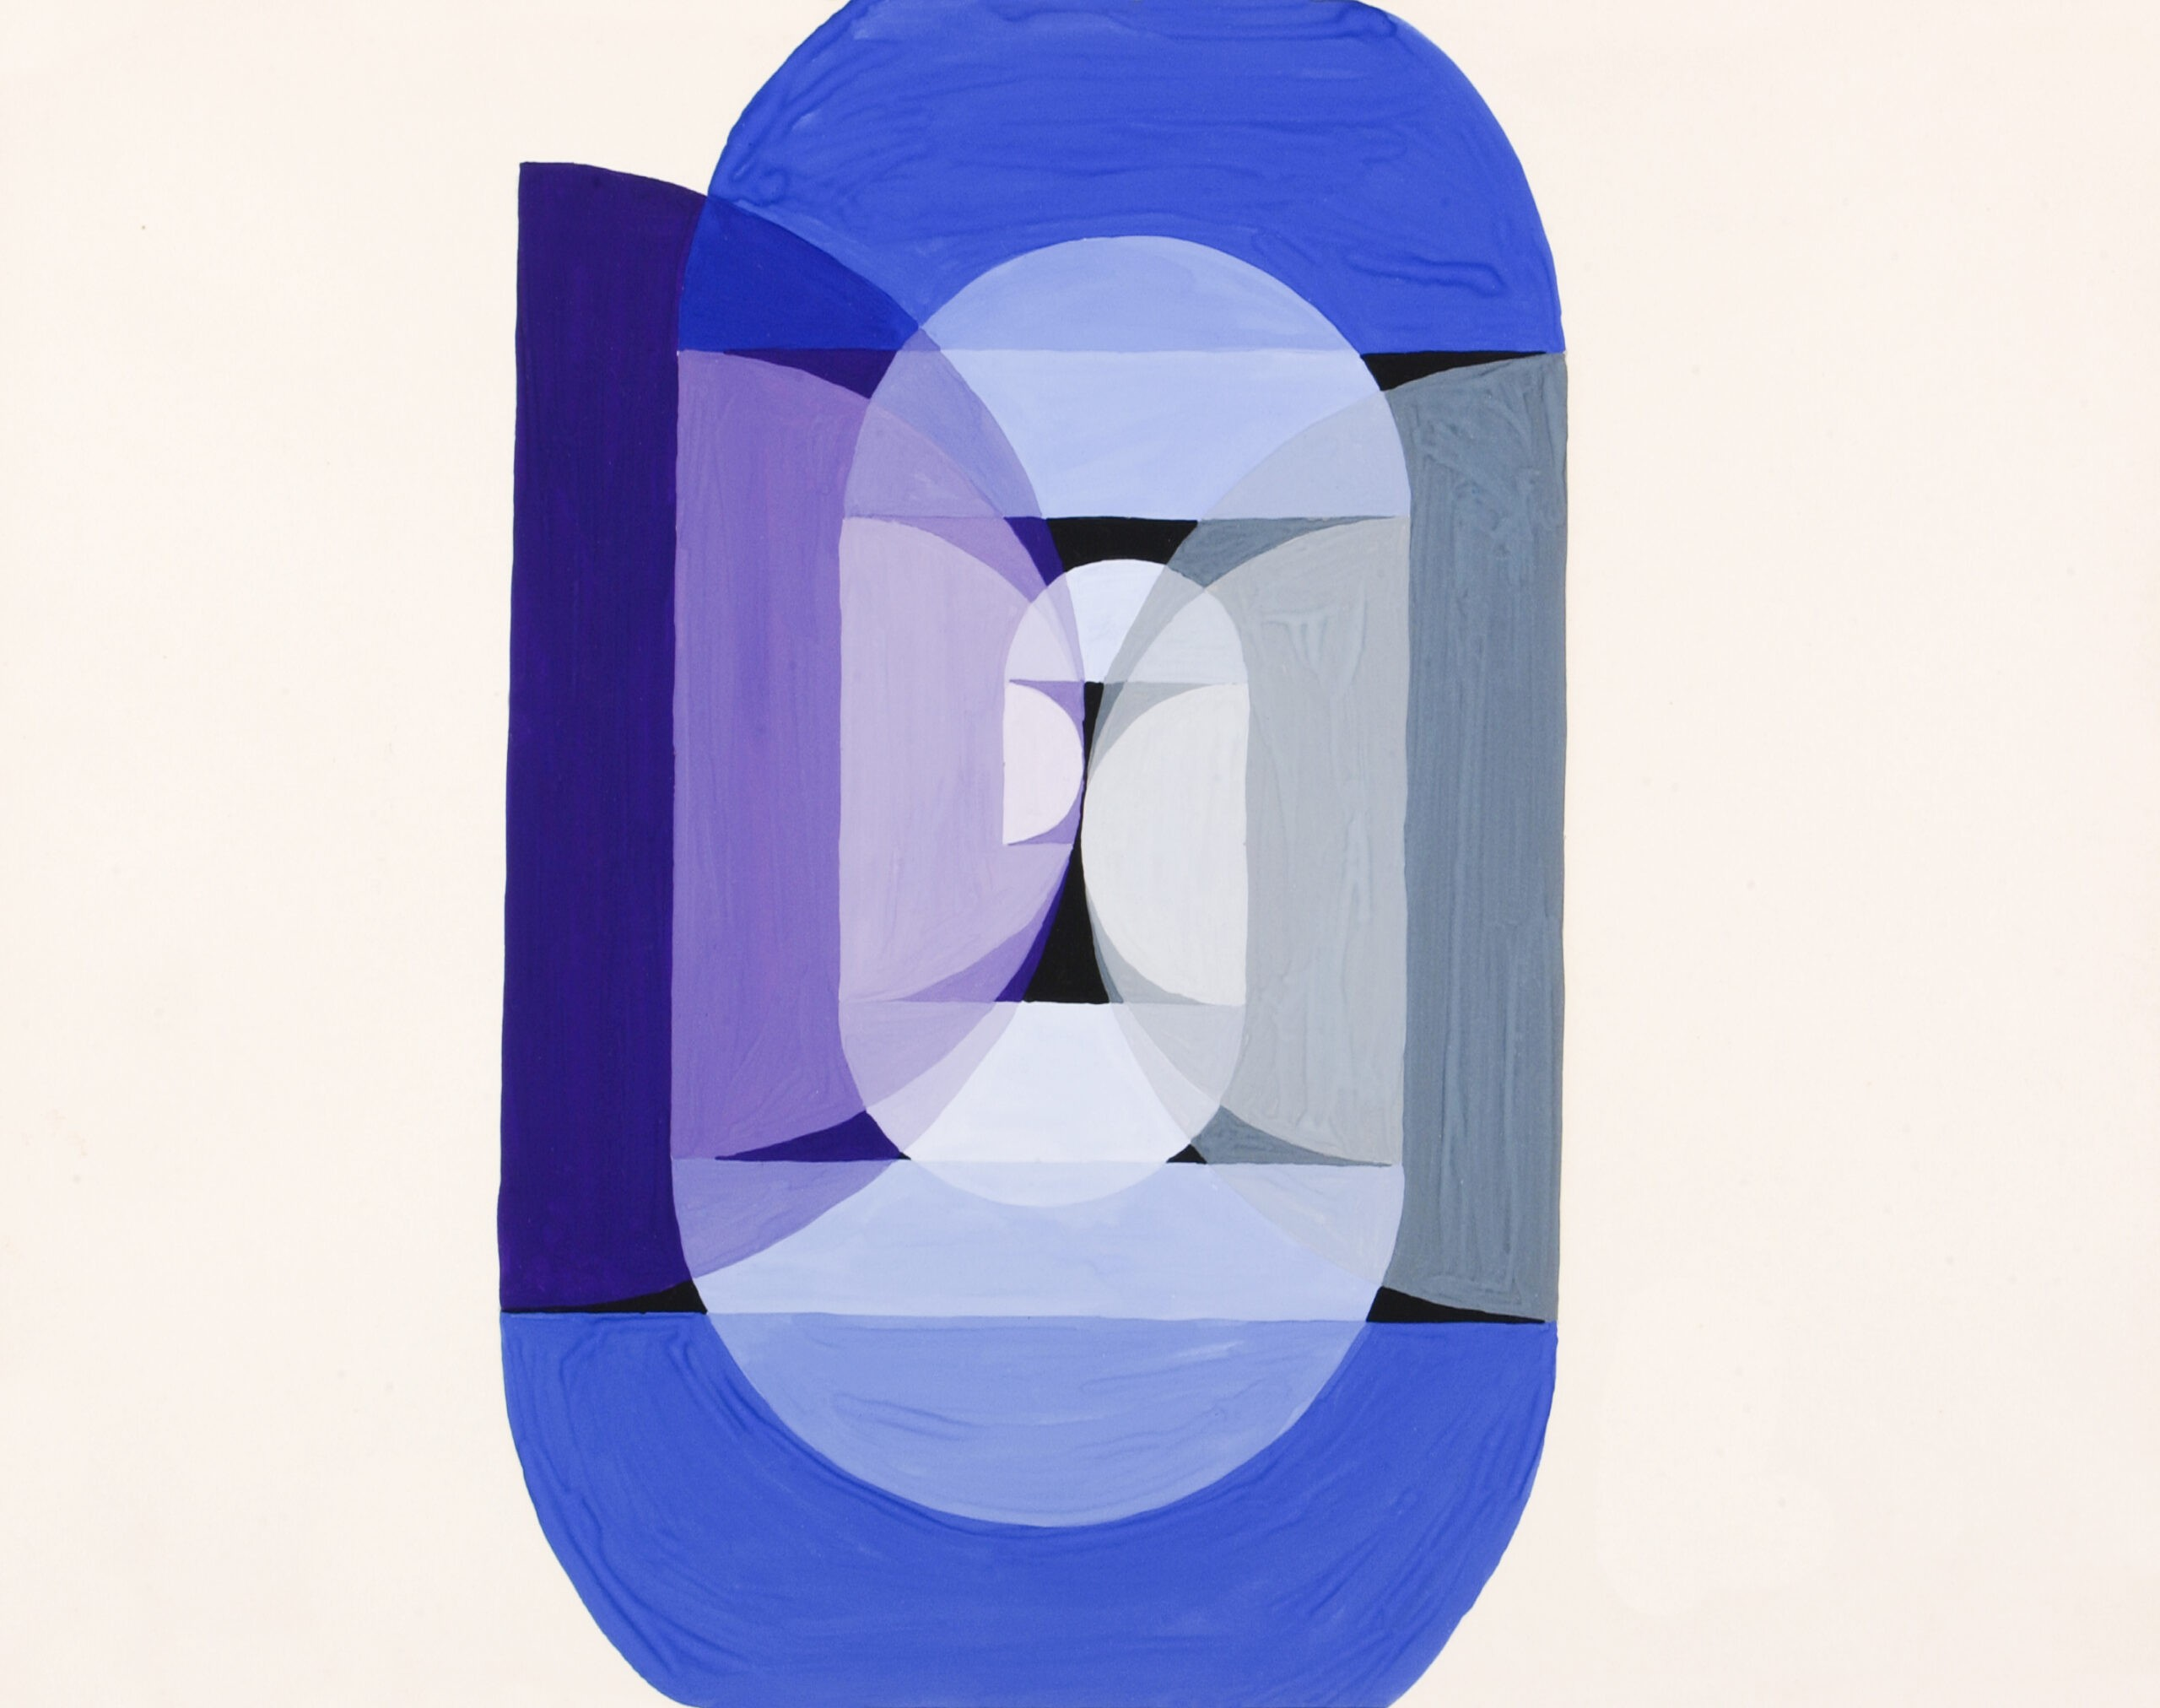 Blue Gray Violet Wheel (from series, the Mathematical Basis of the Arts), (ca. 1934) painting in high resolution by Joseph Schillinger. Original from The Smithsonian Institution. Digitally enhanced by rawpixel.